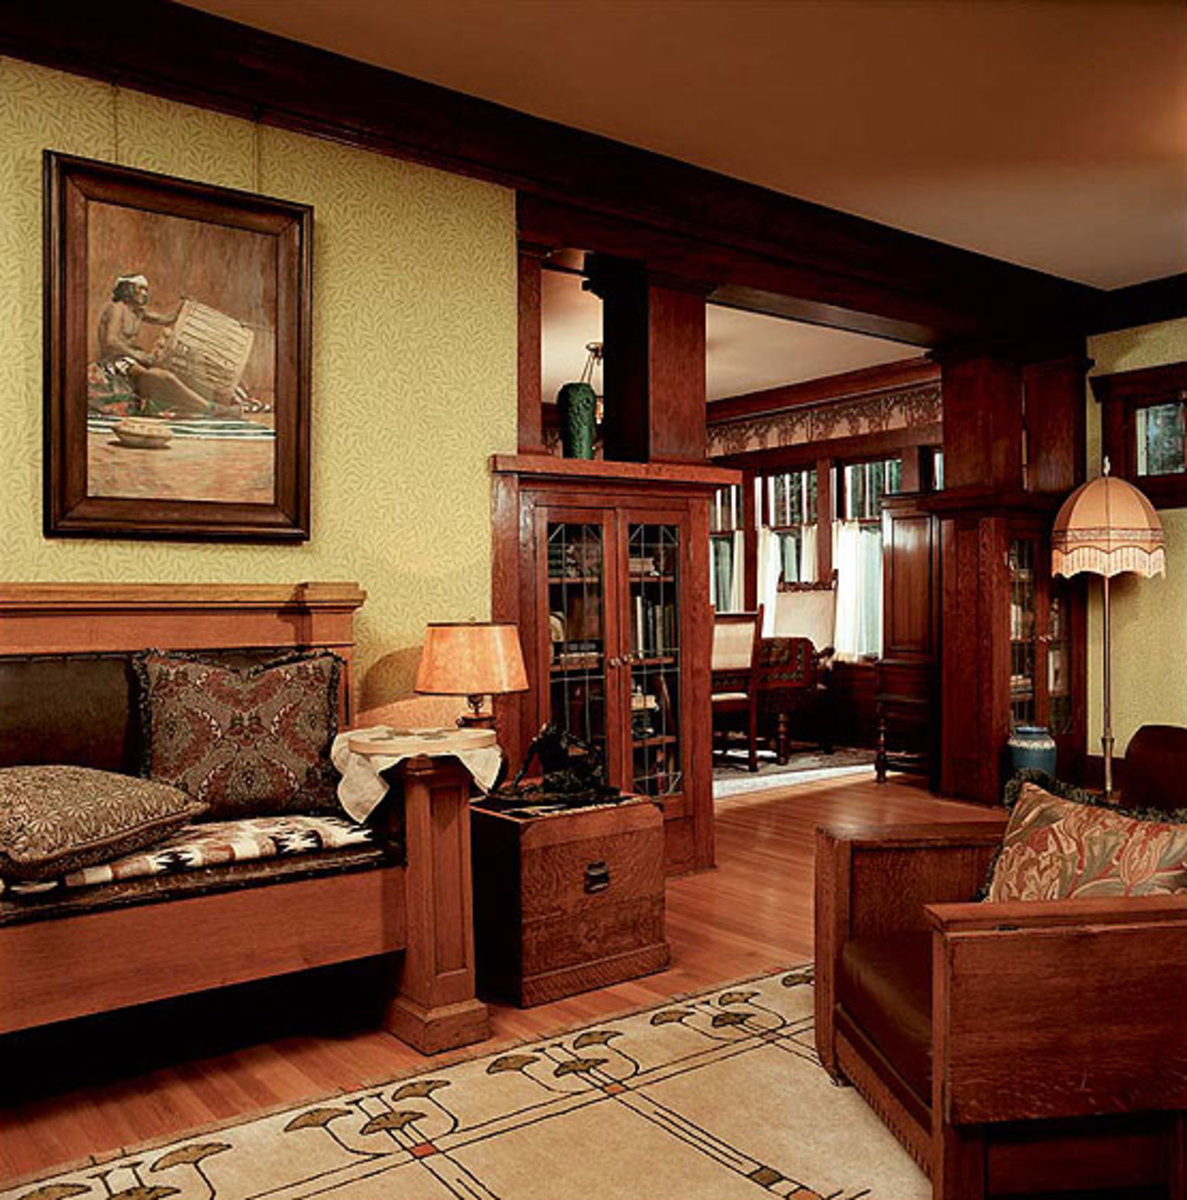 Even with the use of wallpaper and a papered frieze, patterned rug, and  collectibles